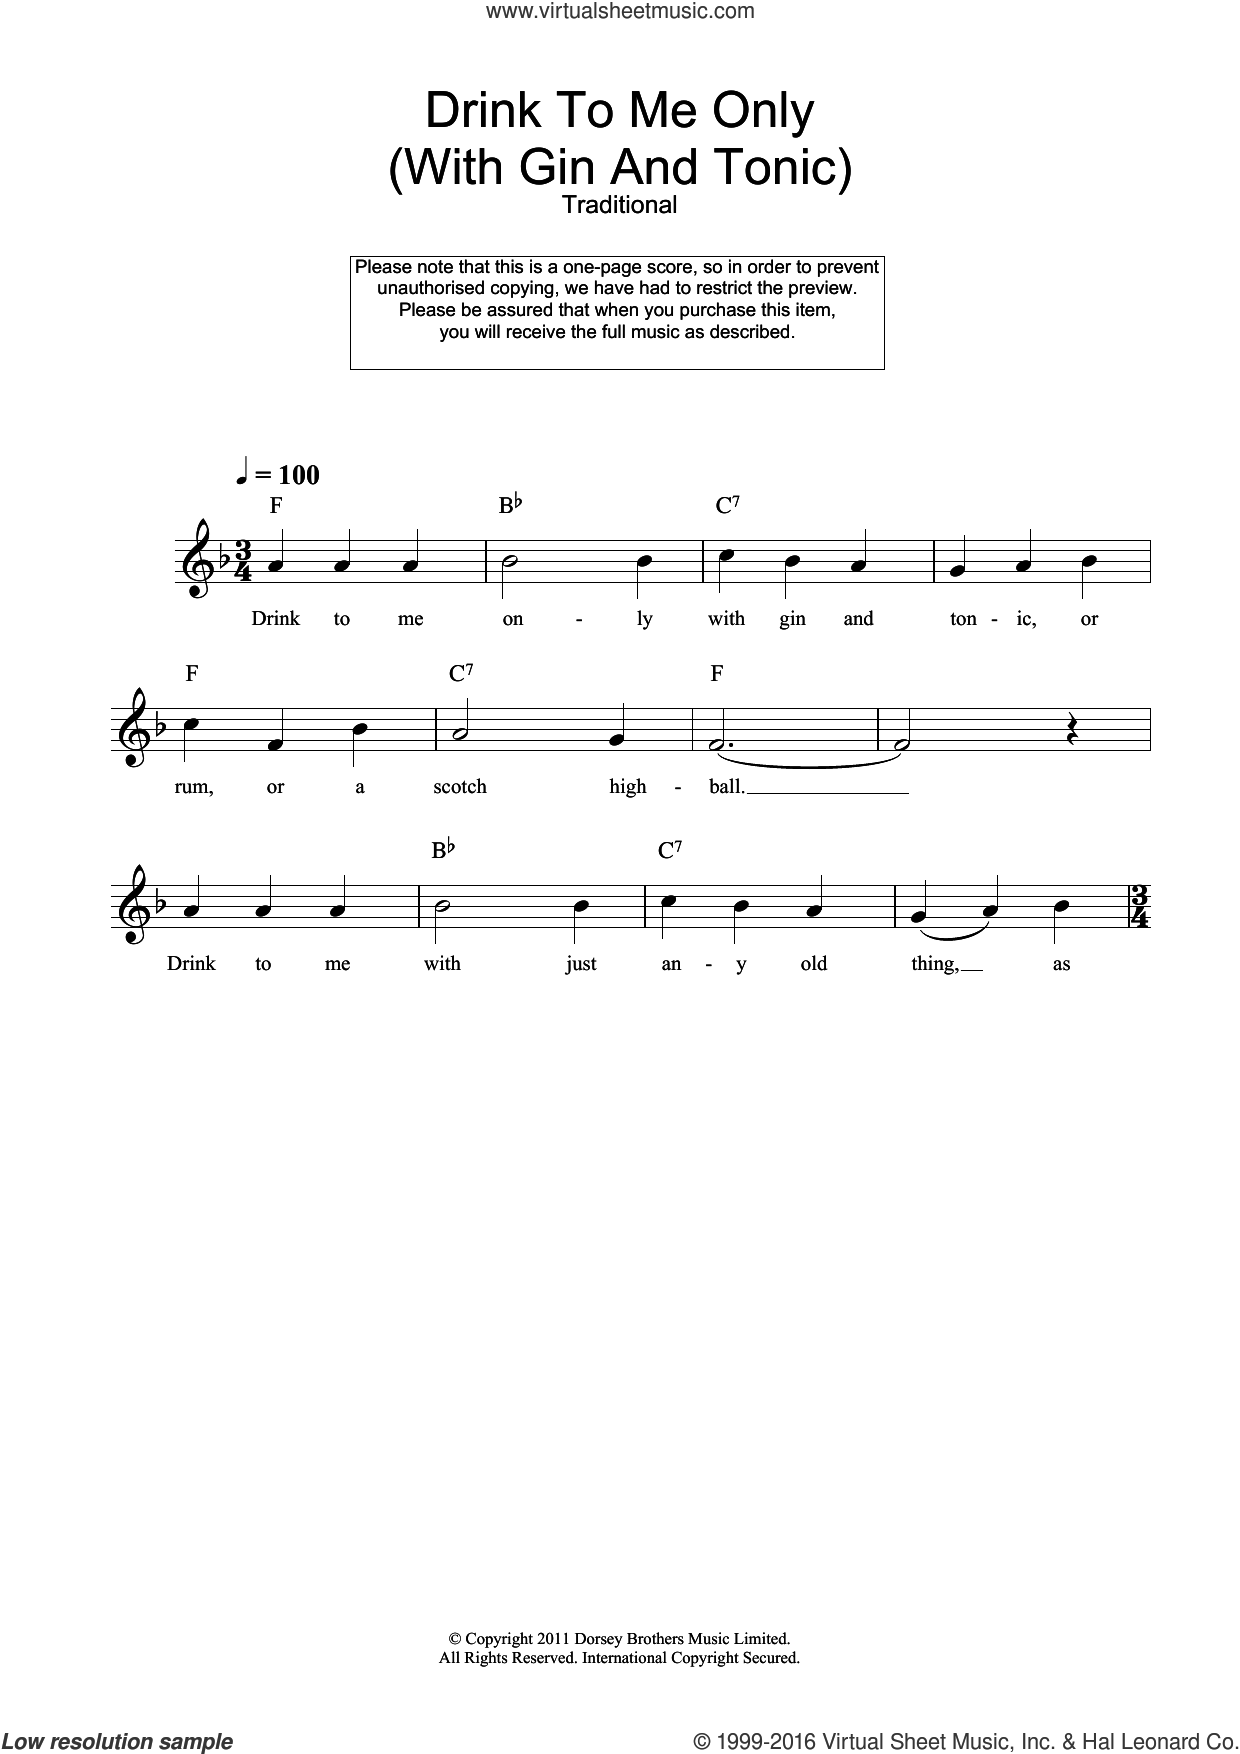 Drink To Me Only (With Gin And Tonic) sheet music for voice and other instruments (fake book), intermediate